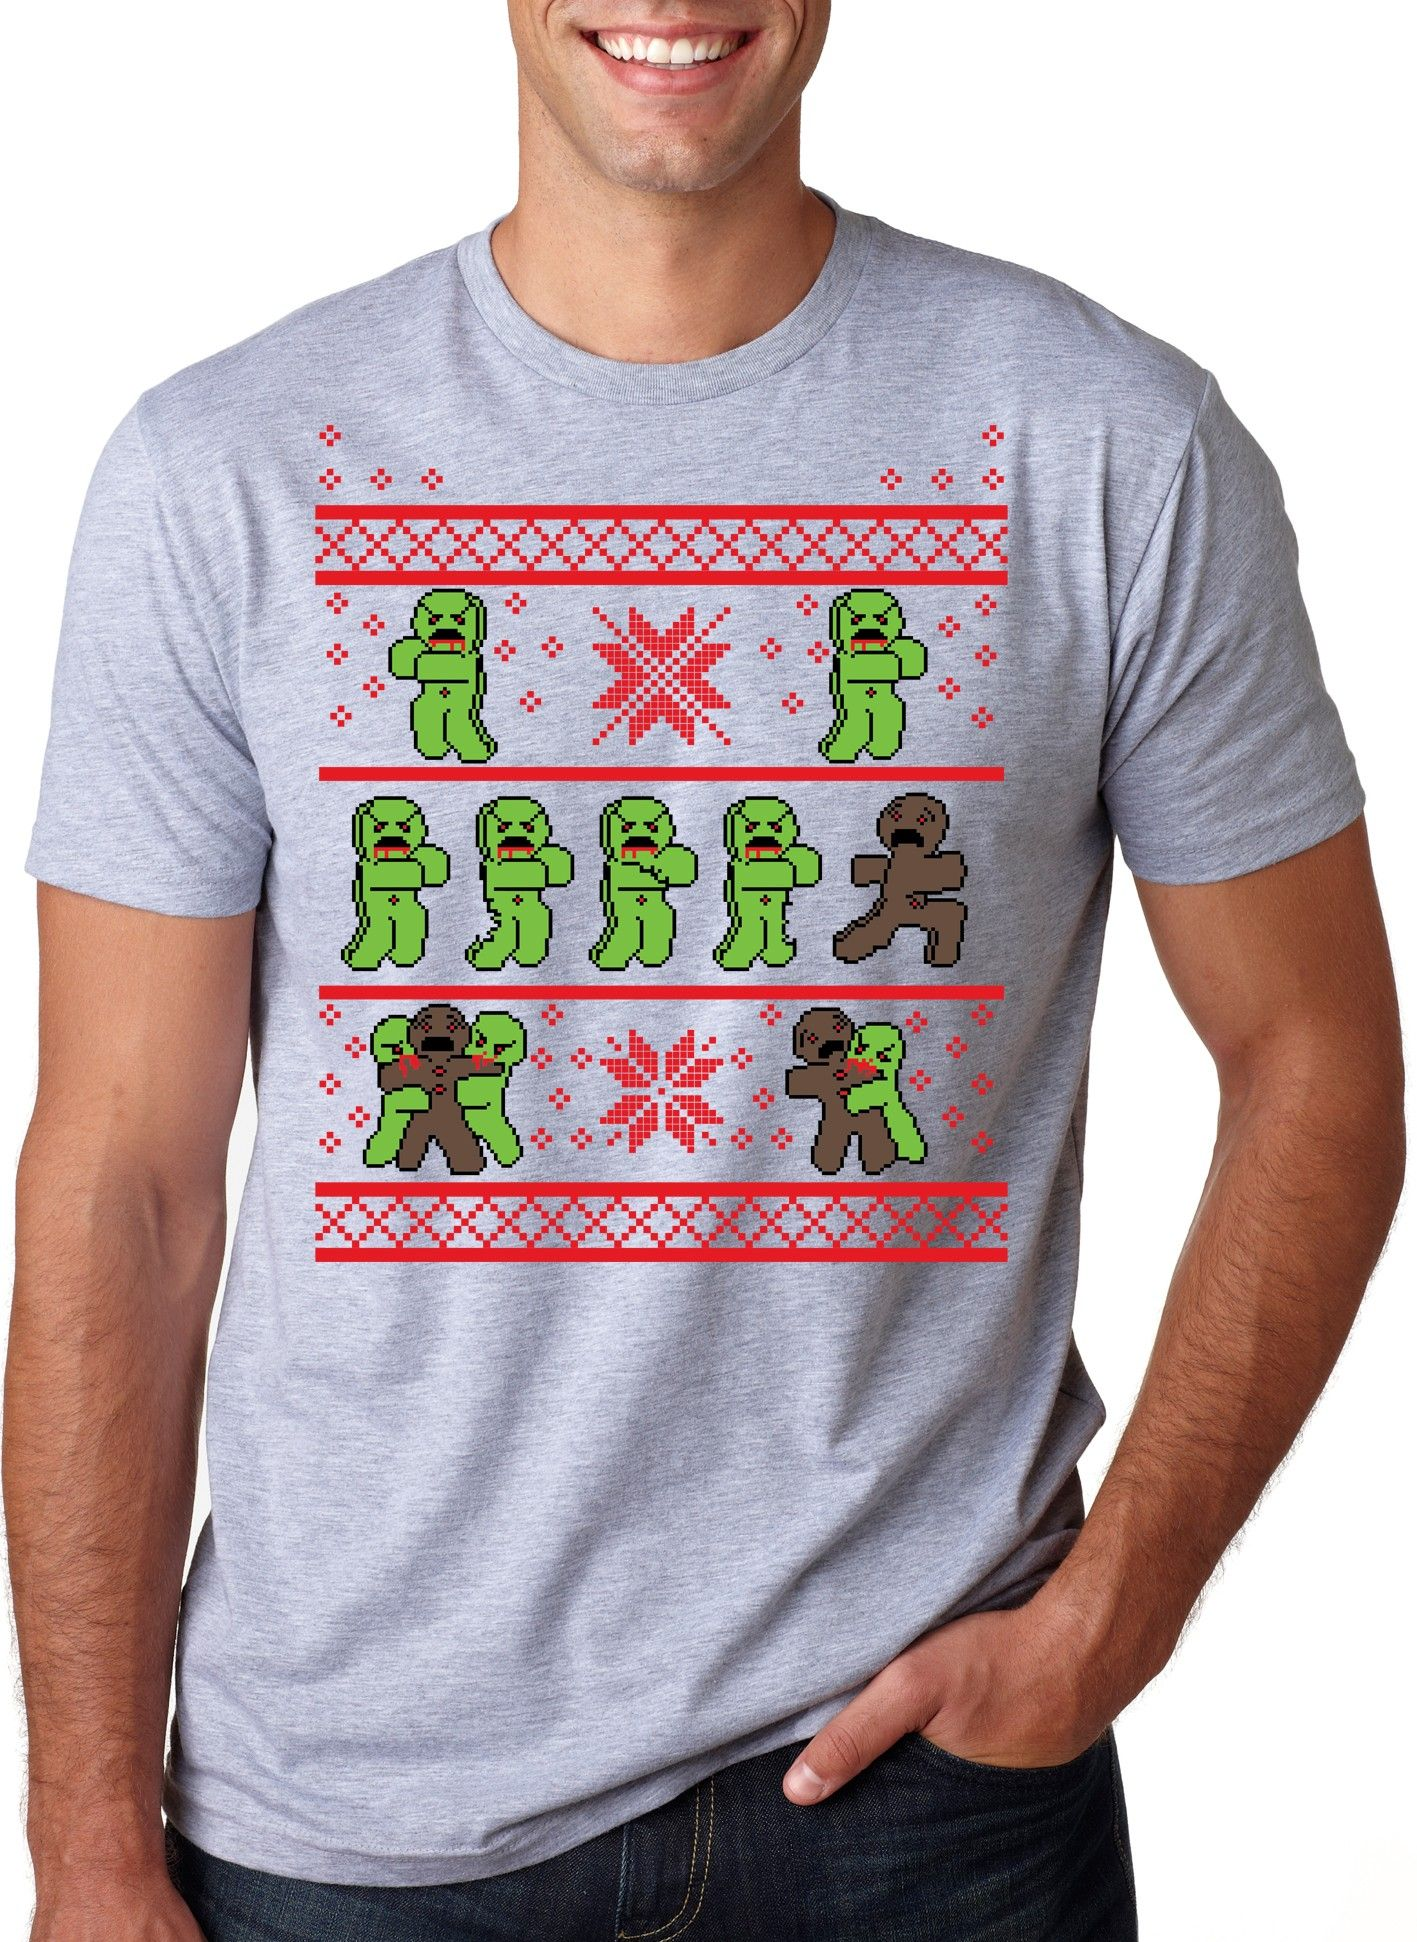 Gingerbread zombie ugly christmas sweater t shirt crazydog t gingerbread zombie ugly christmas sweater t shirt crazydog t shirts gamestrikefo Image collections